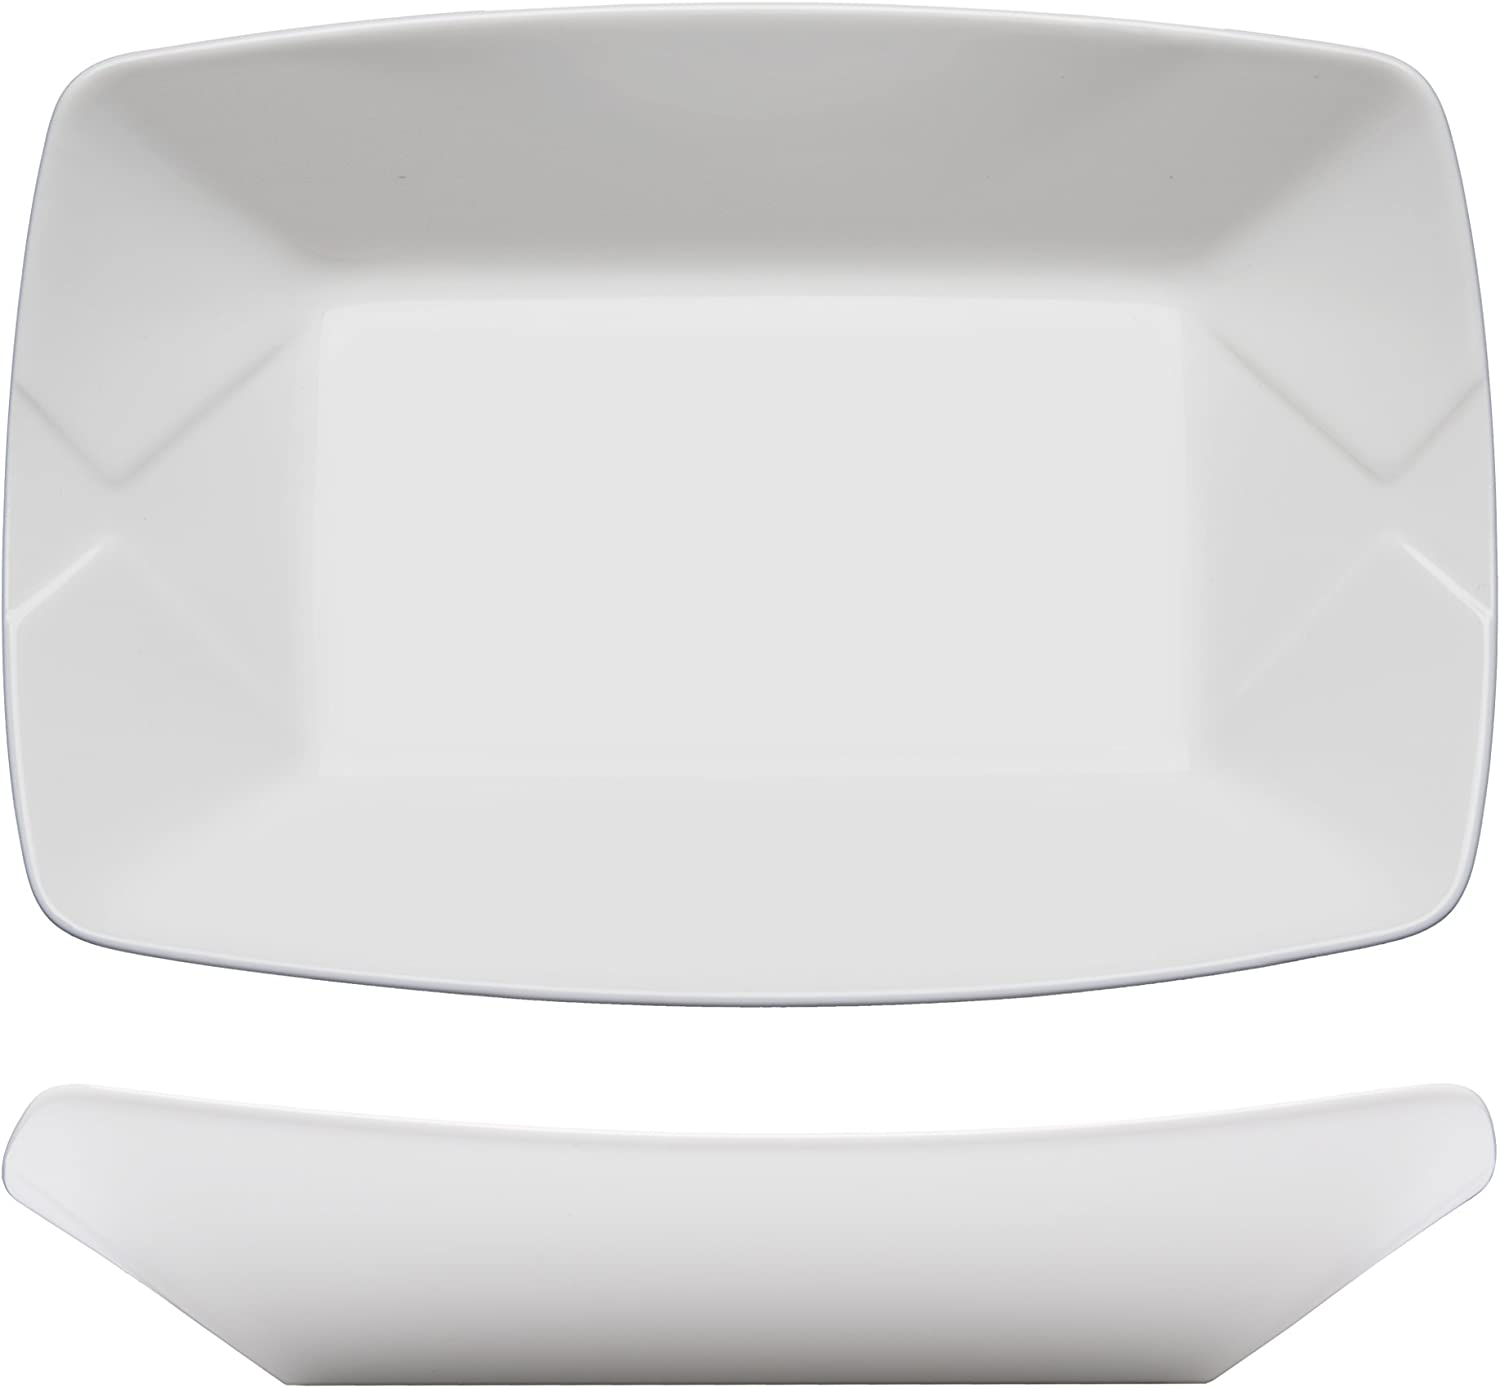 Fortessa famous Fortaluxe Food Truck Fort Worth Mall Chic Plate Large 8.5 Boat Serving